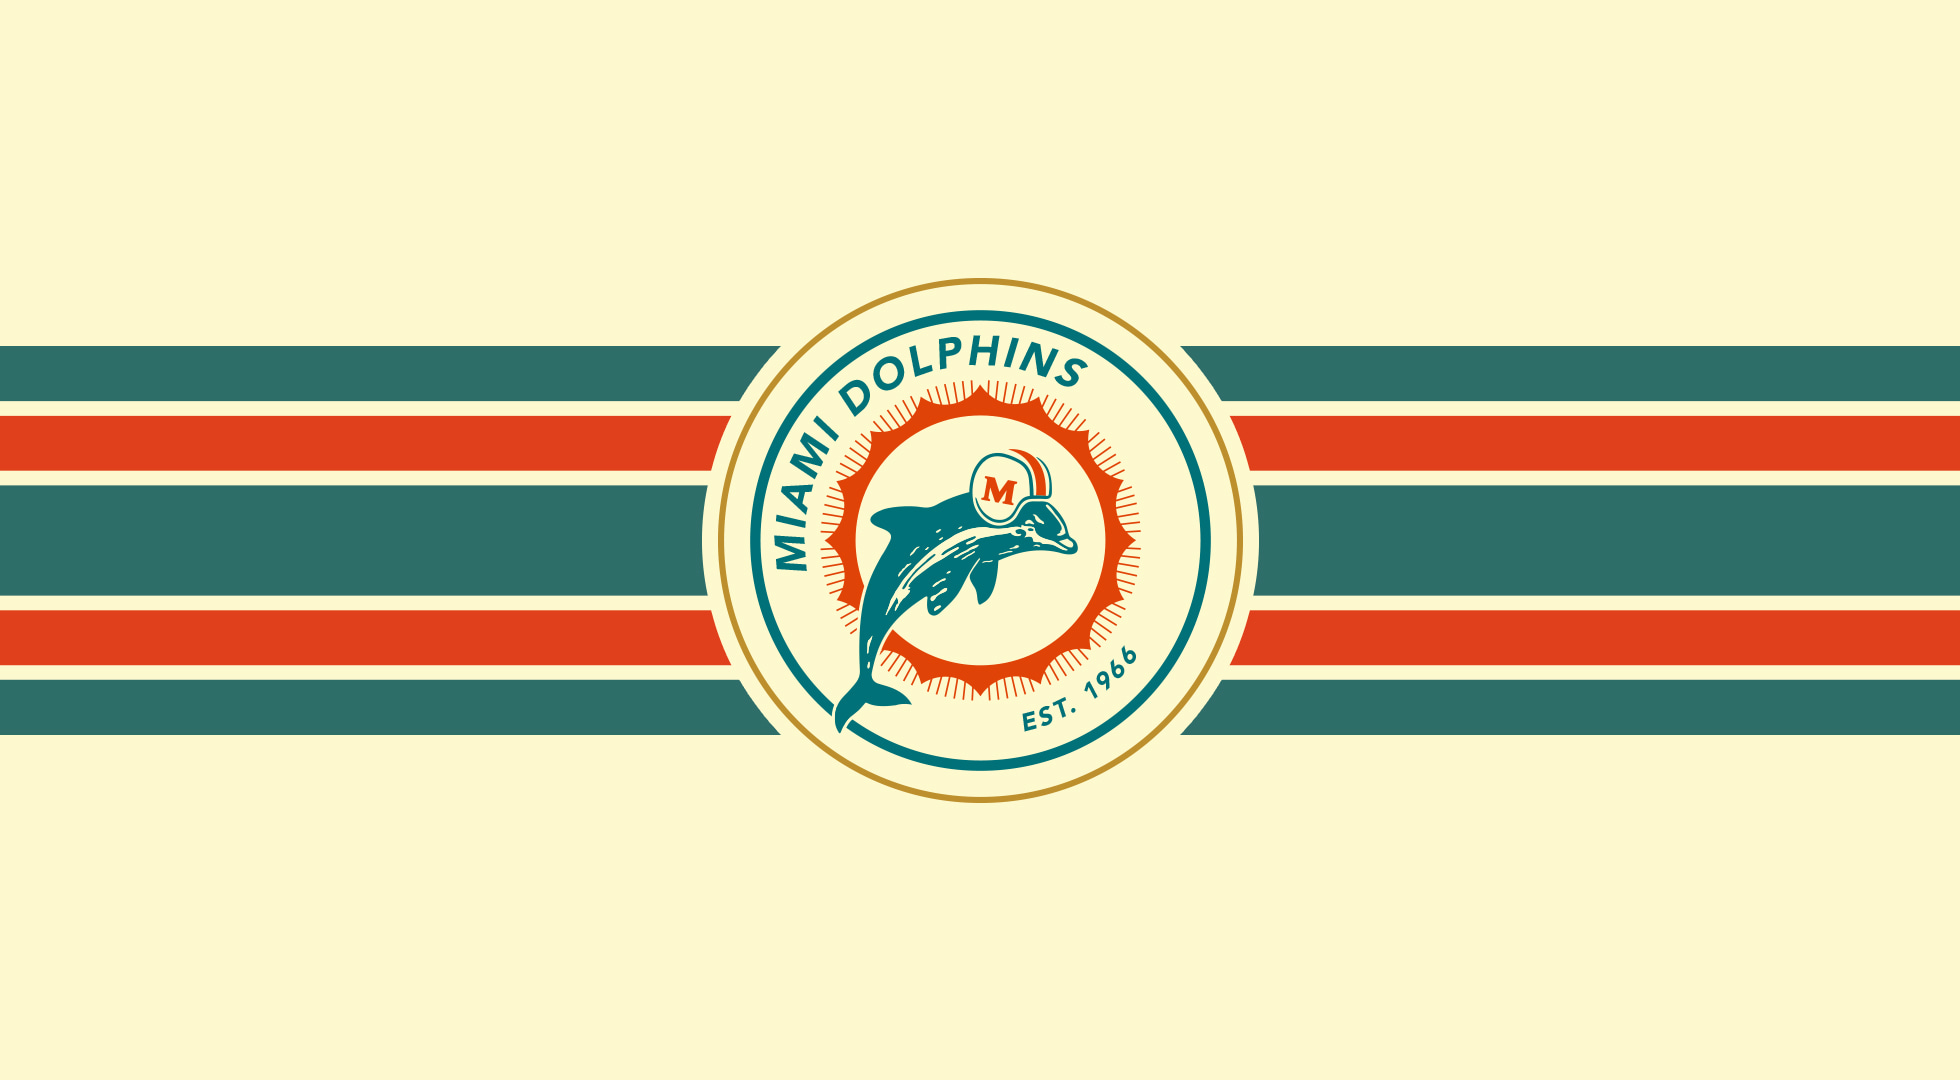 Dolphins Wallpapers Miami Dolphins Dolphins Com